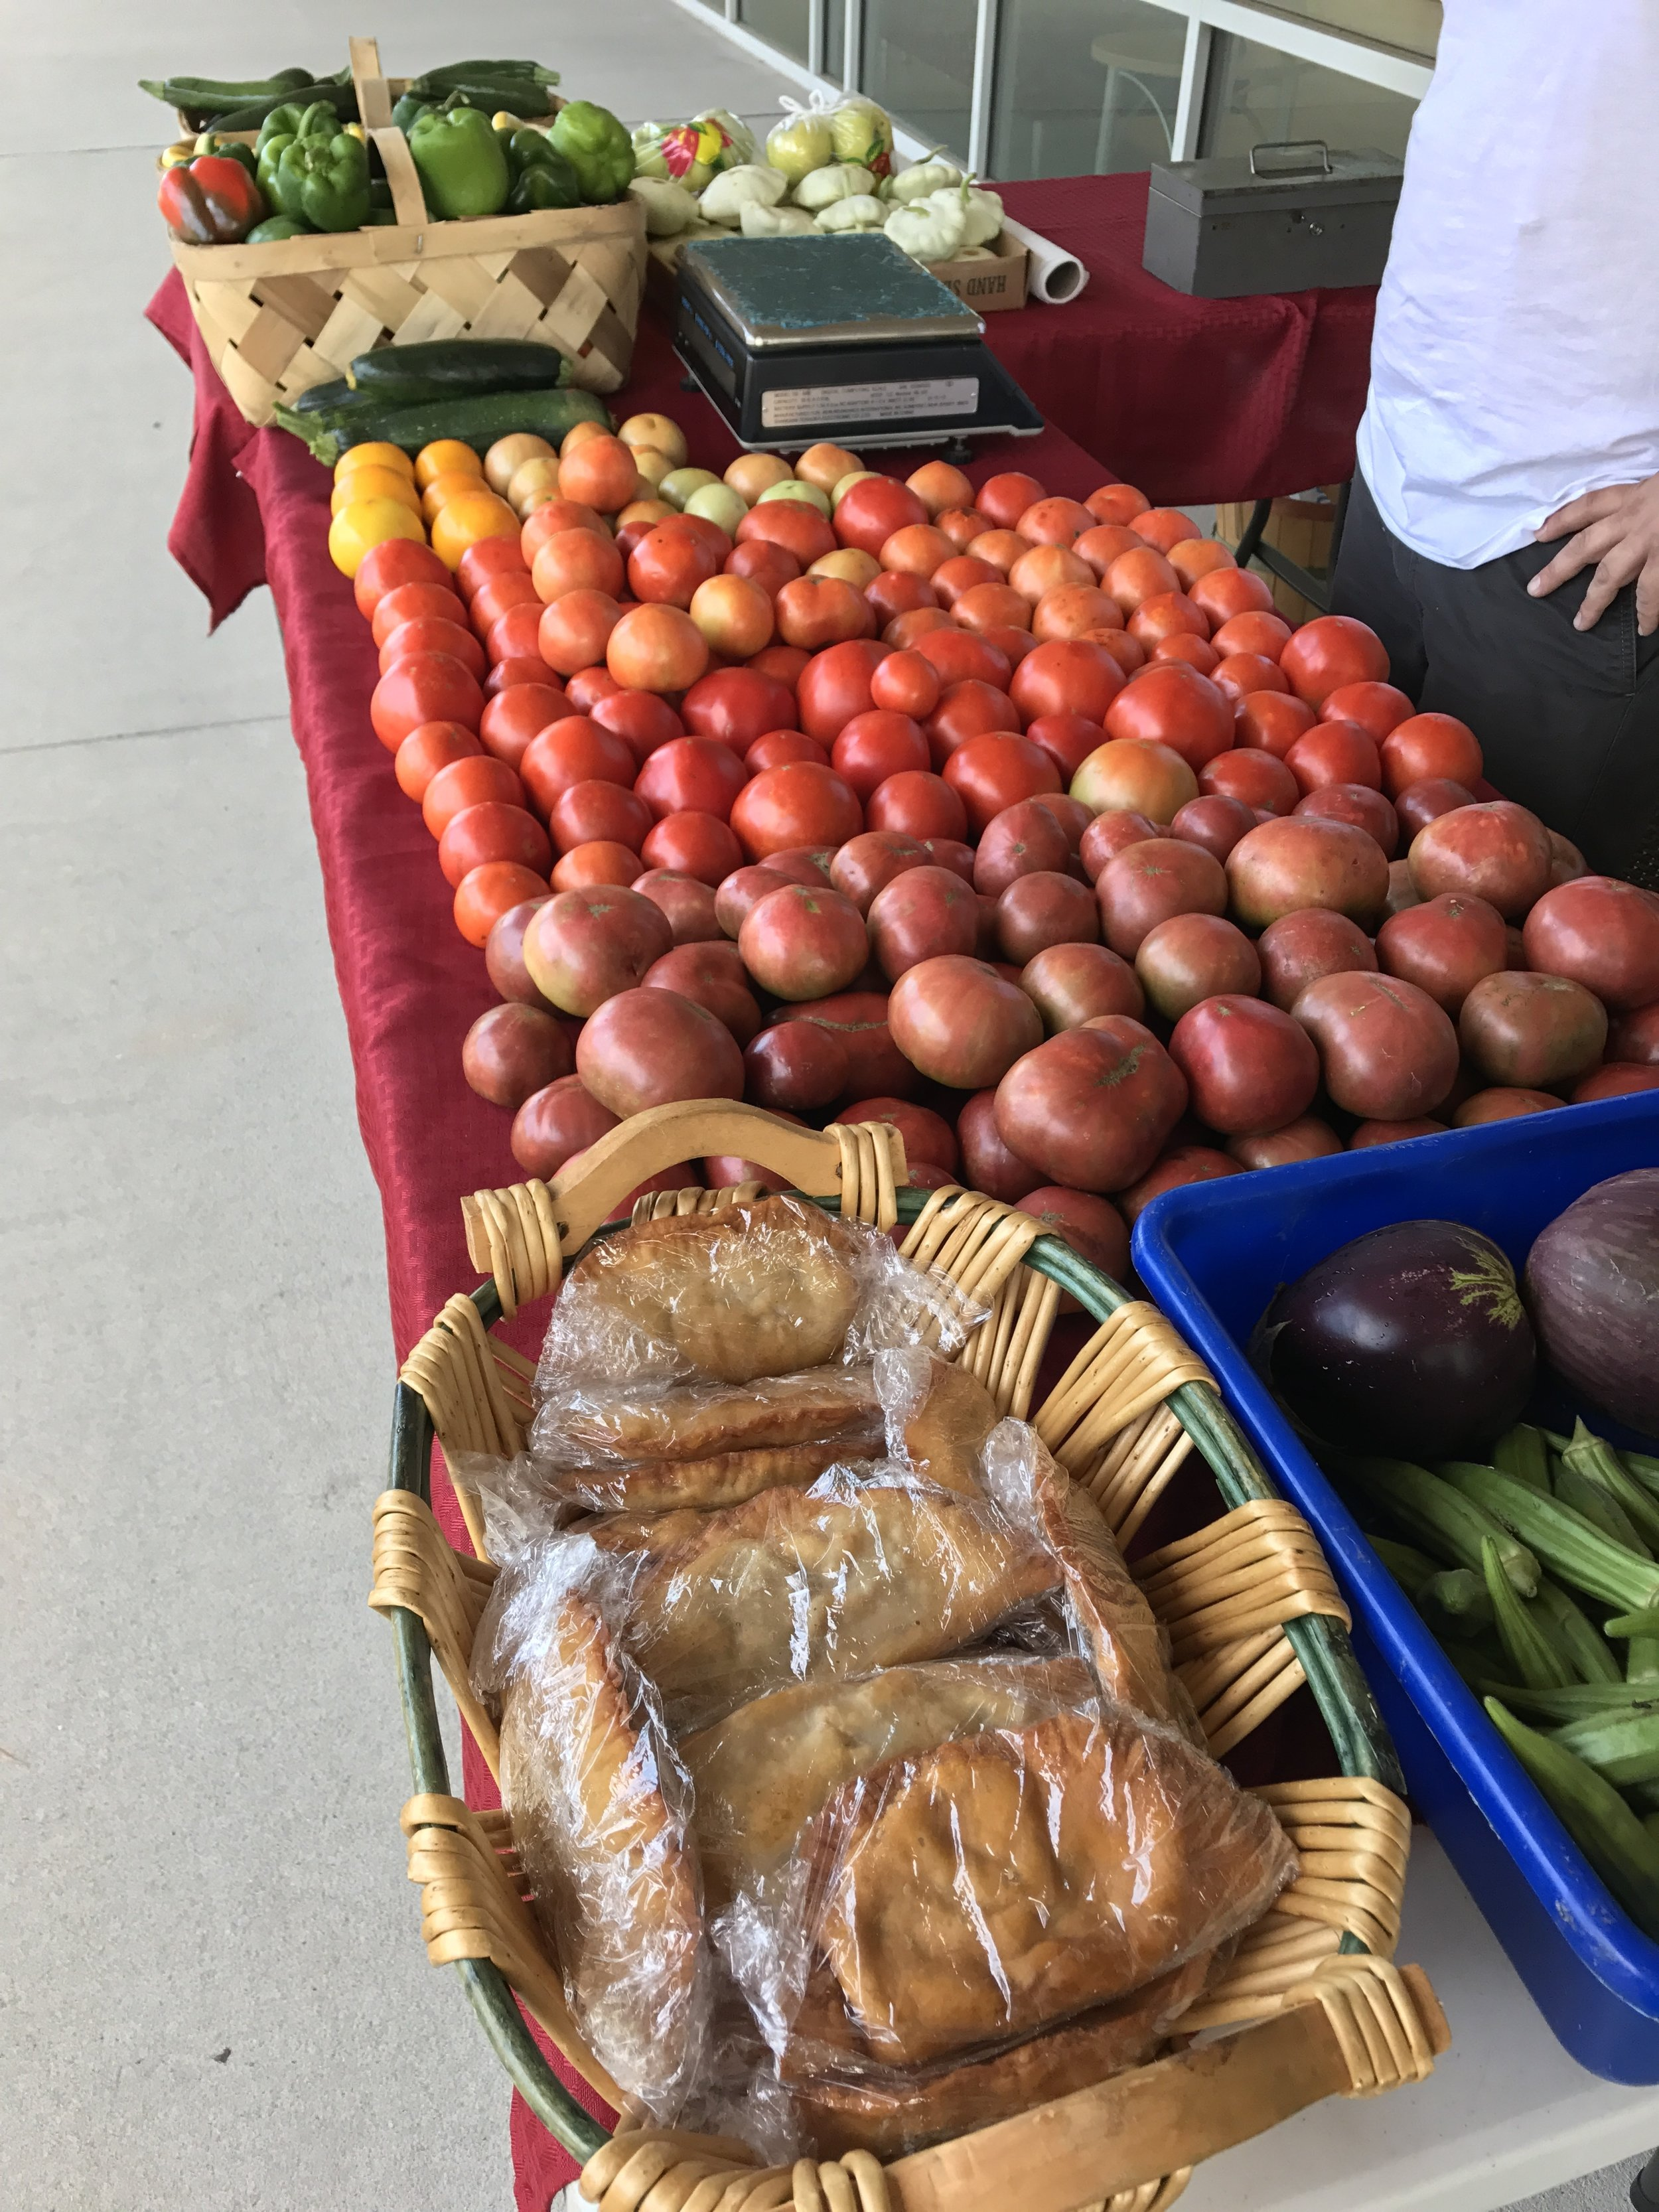 Farmers market comes to work every Tuesday! I love it!